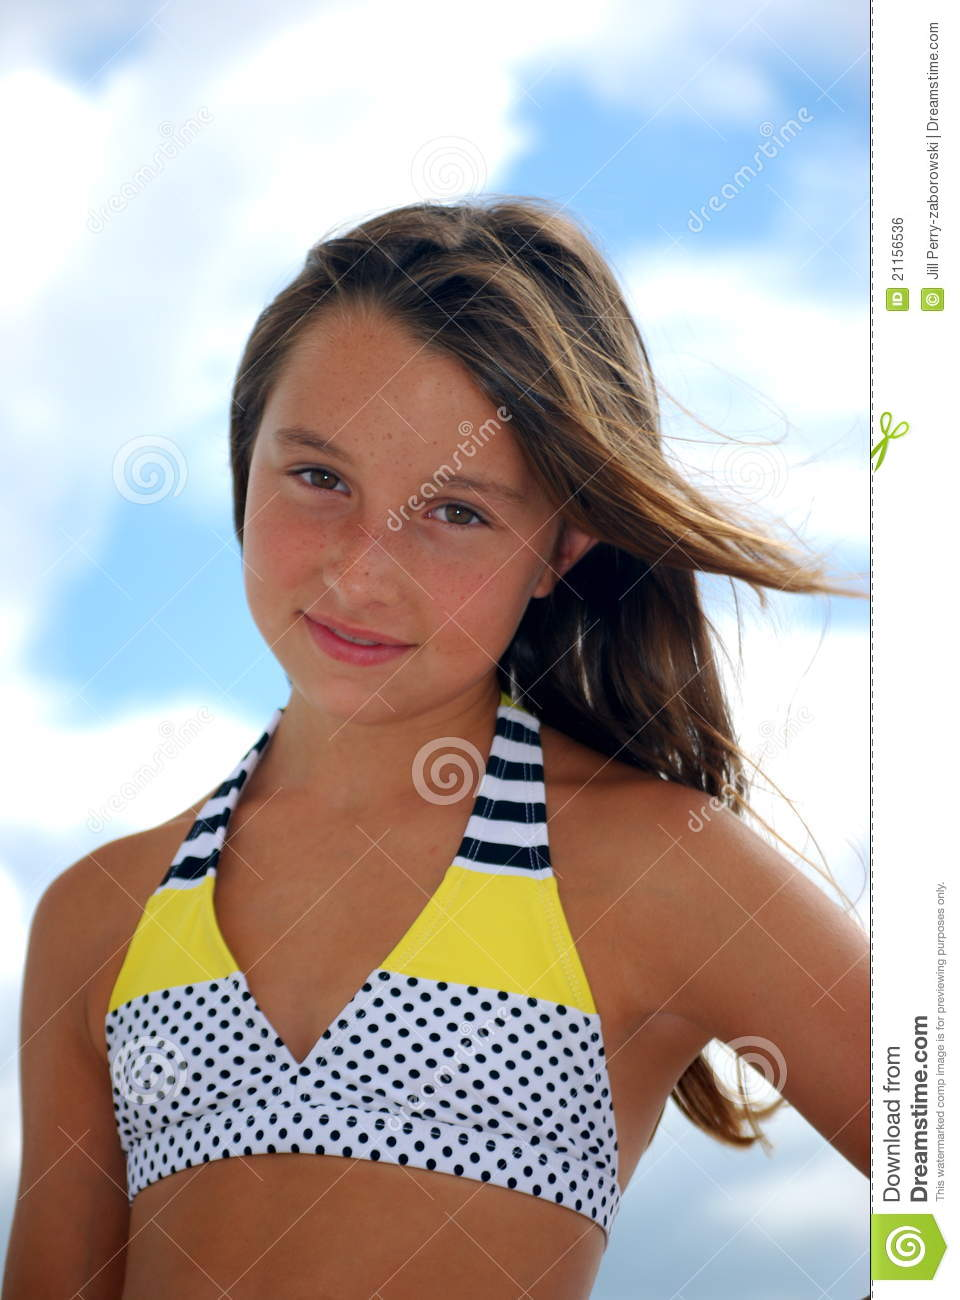 white preteen girl in a yellow white and black polka dot and striped